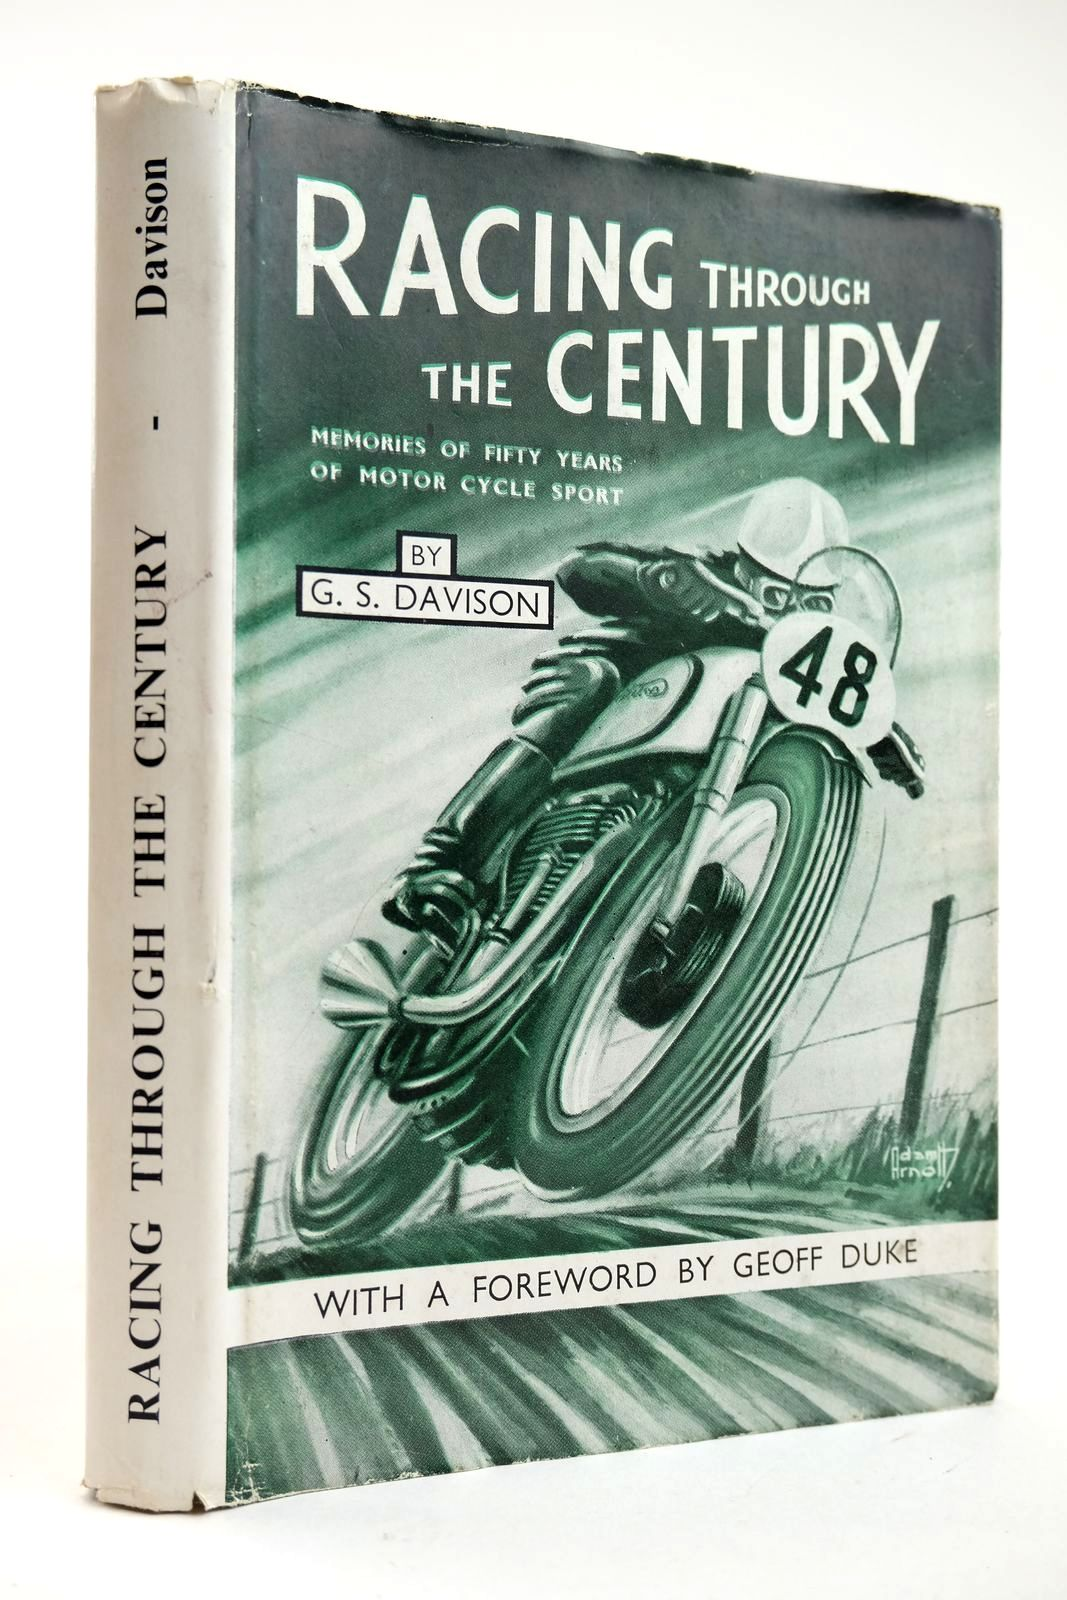 Photo of RACING THROUGH THE CENTURY written by Davison, G.S. Duke, Geoff published by The T.T. Special (STOCK CODE: 2132282)  for sale by Stella & Rose's Books